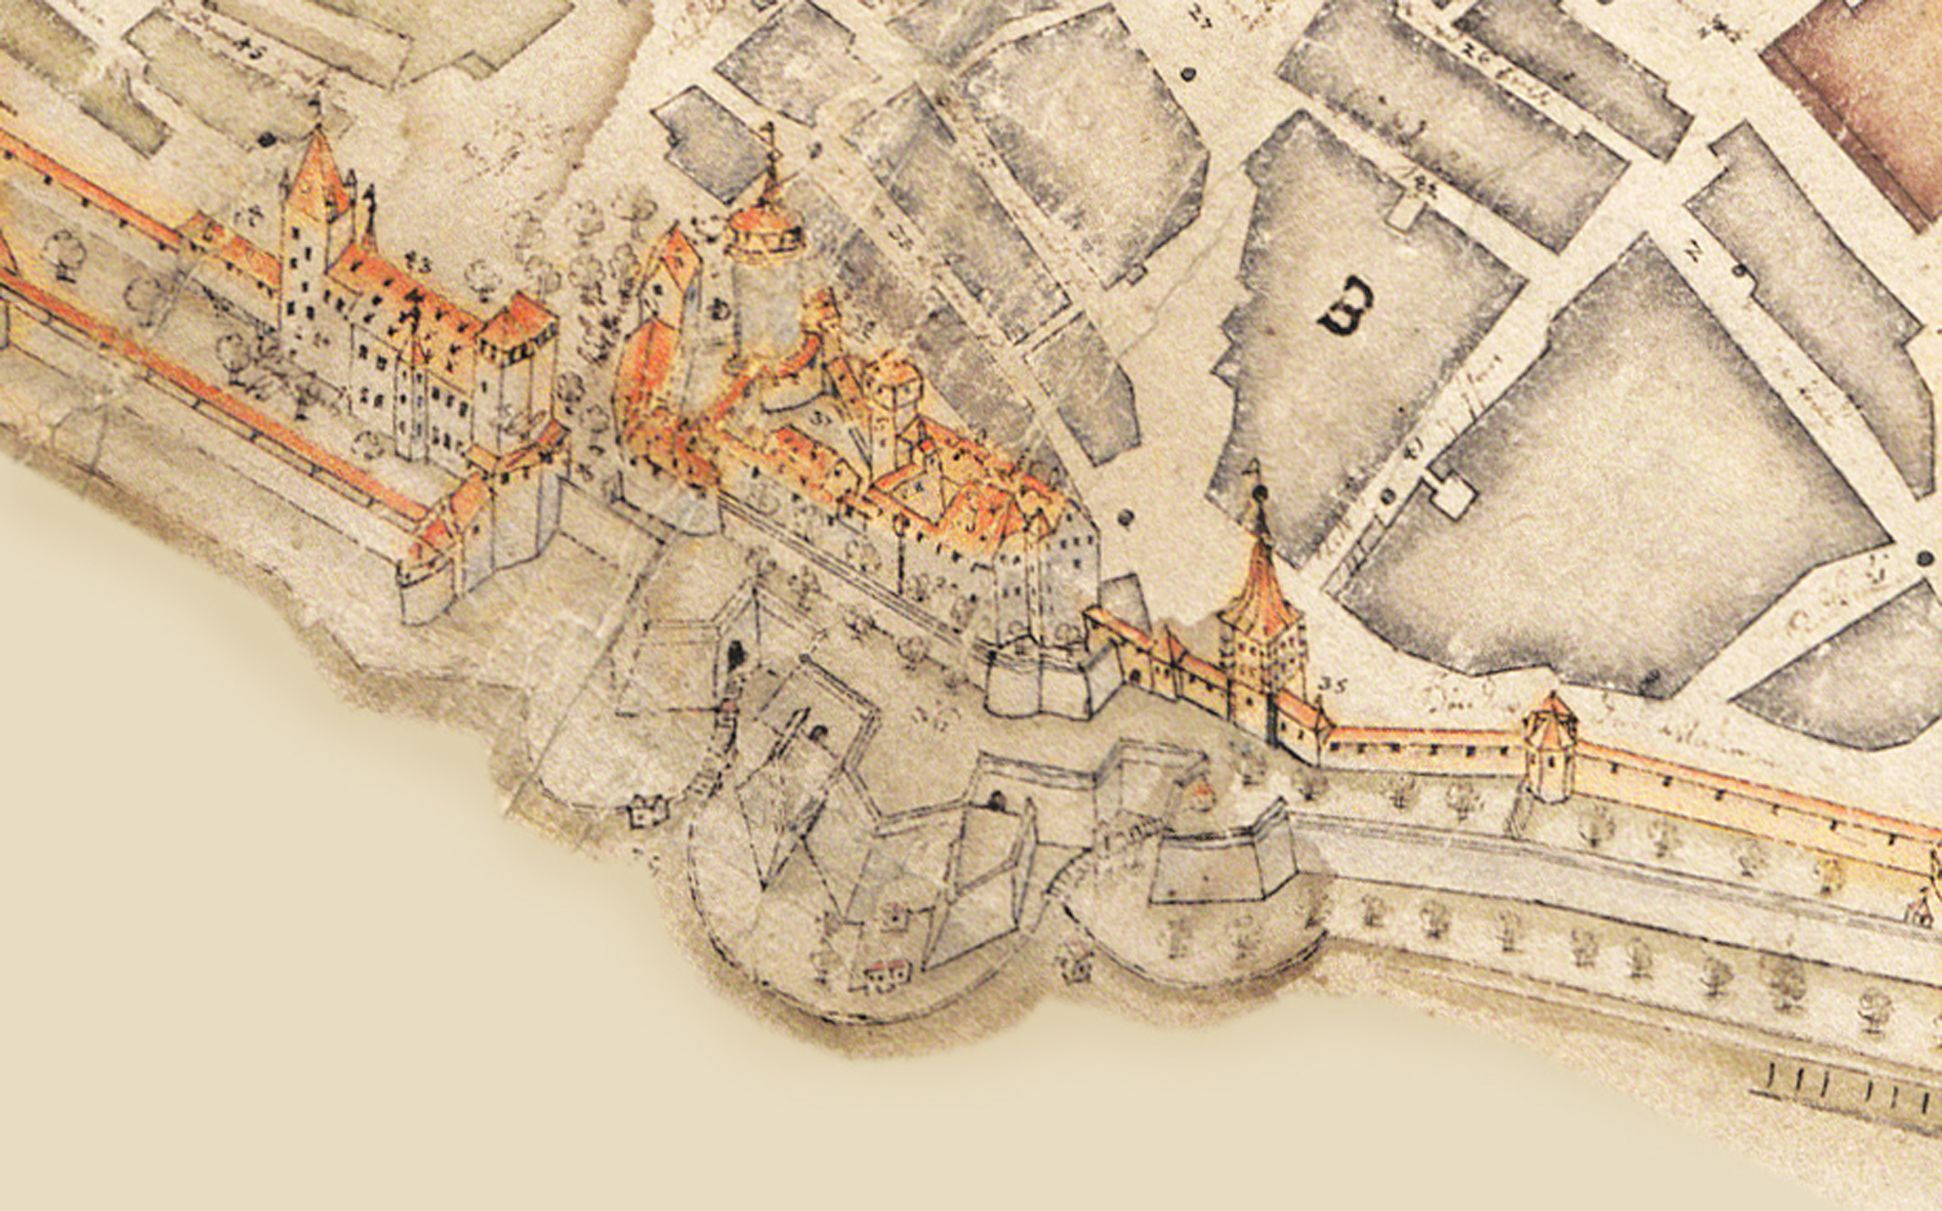 This City of Nuremberg within its enclosing walls… Detail of the castle area brought into vertical position